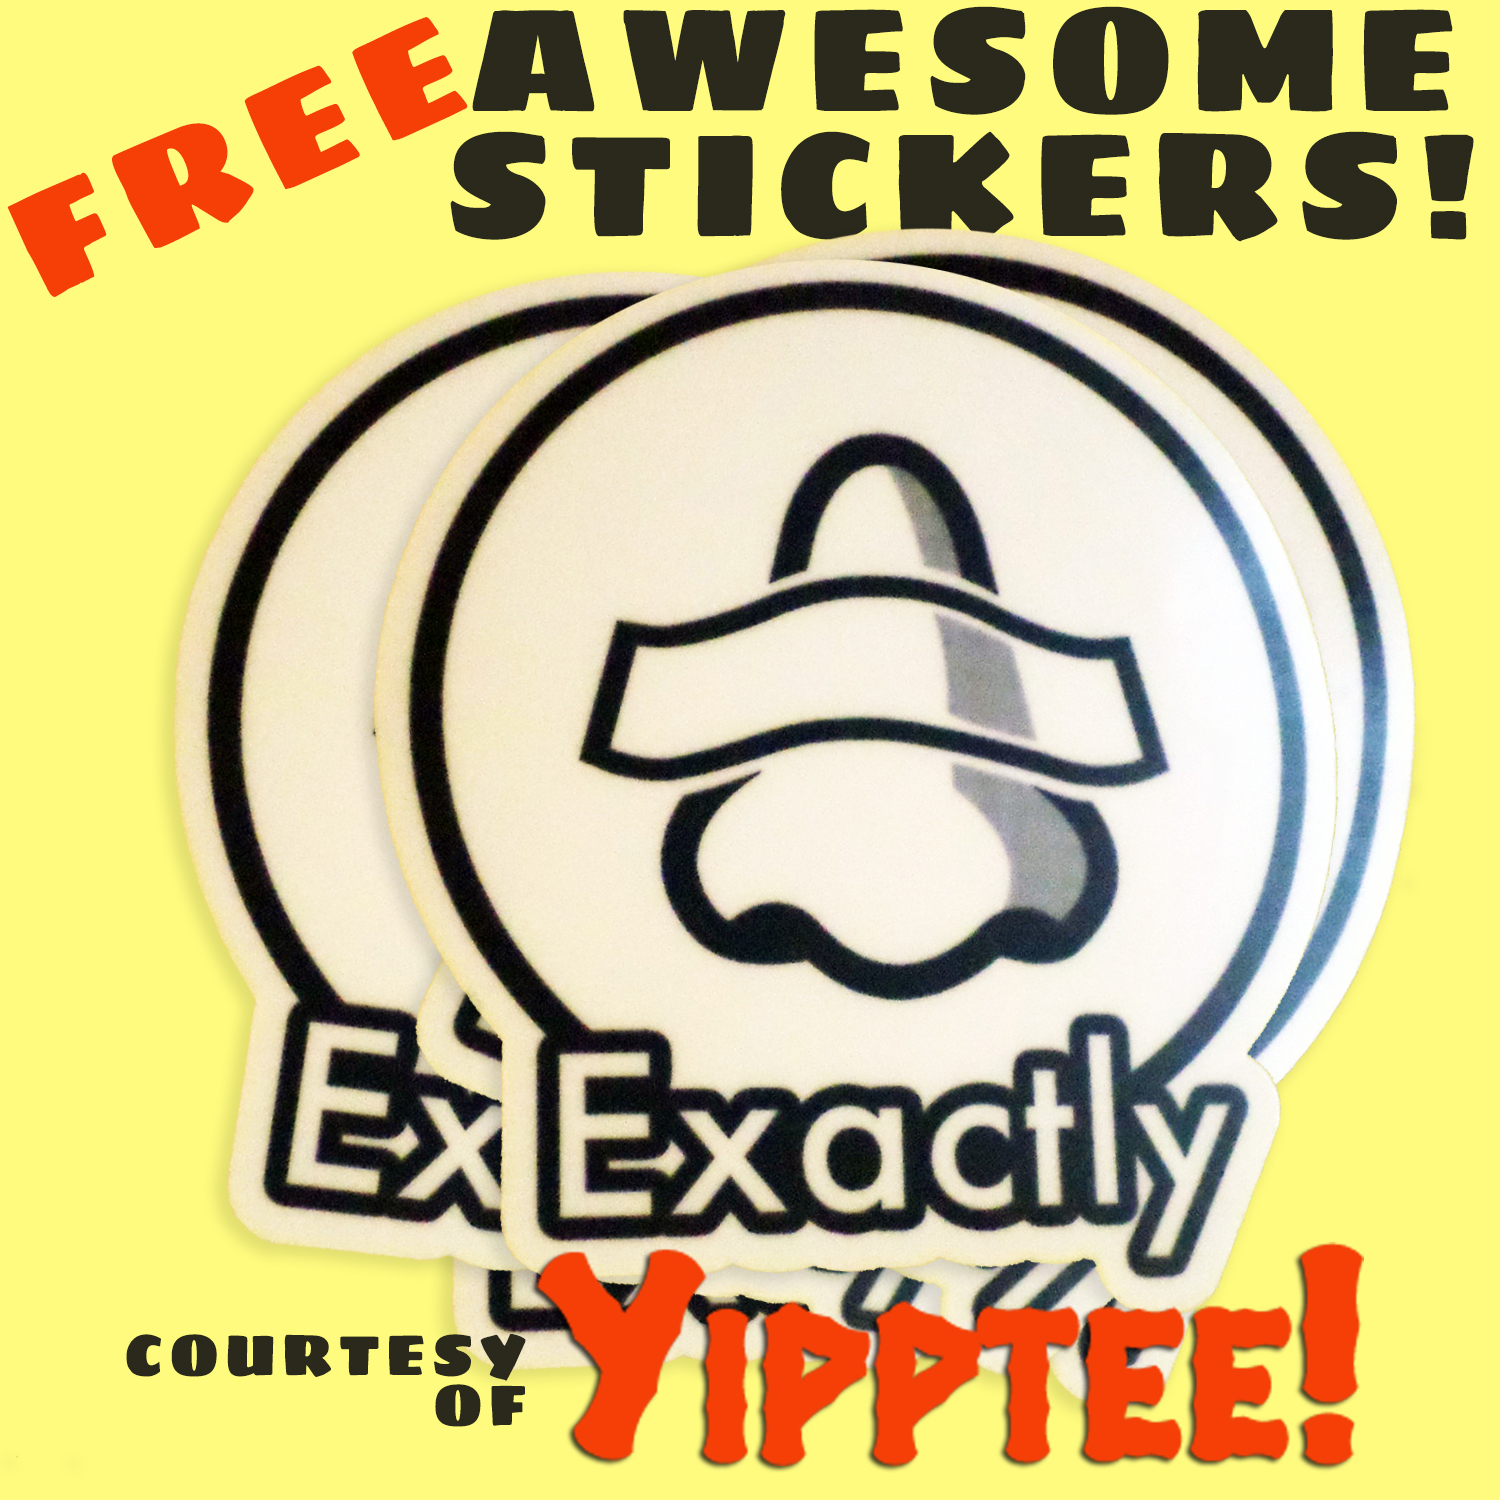 Free Stickers courtesy of YIPPTEE